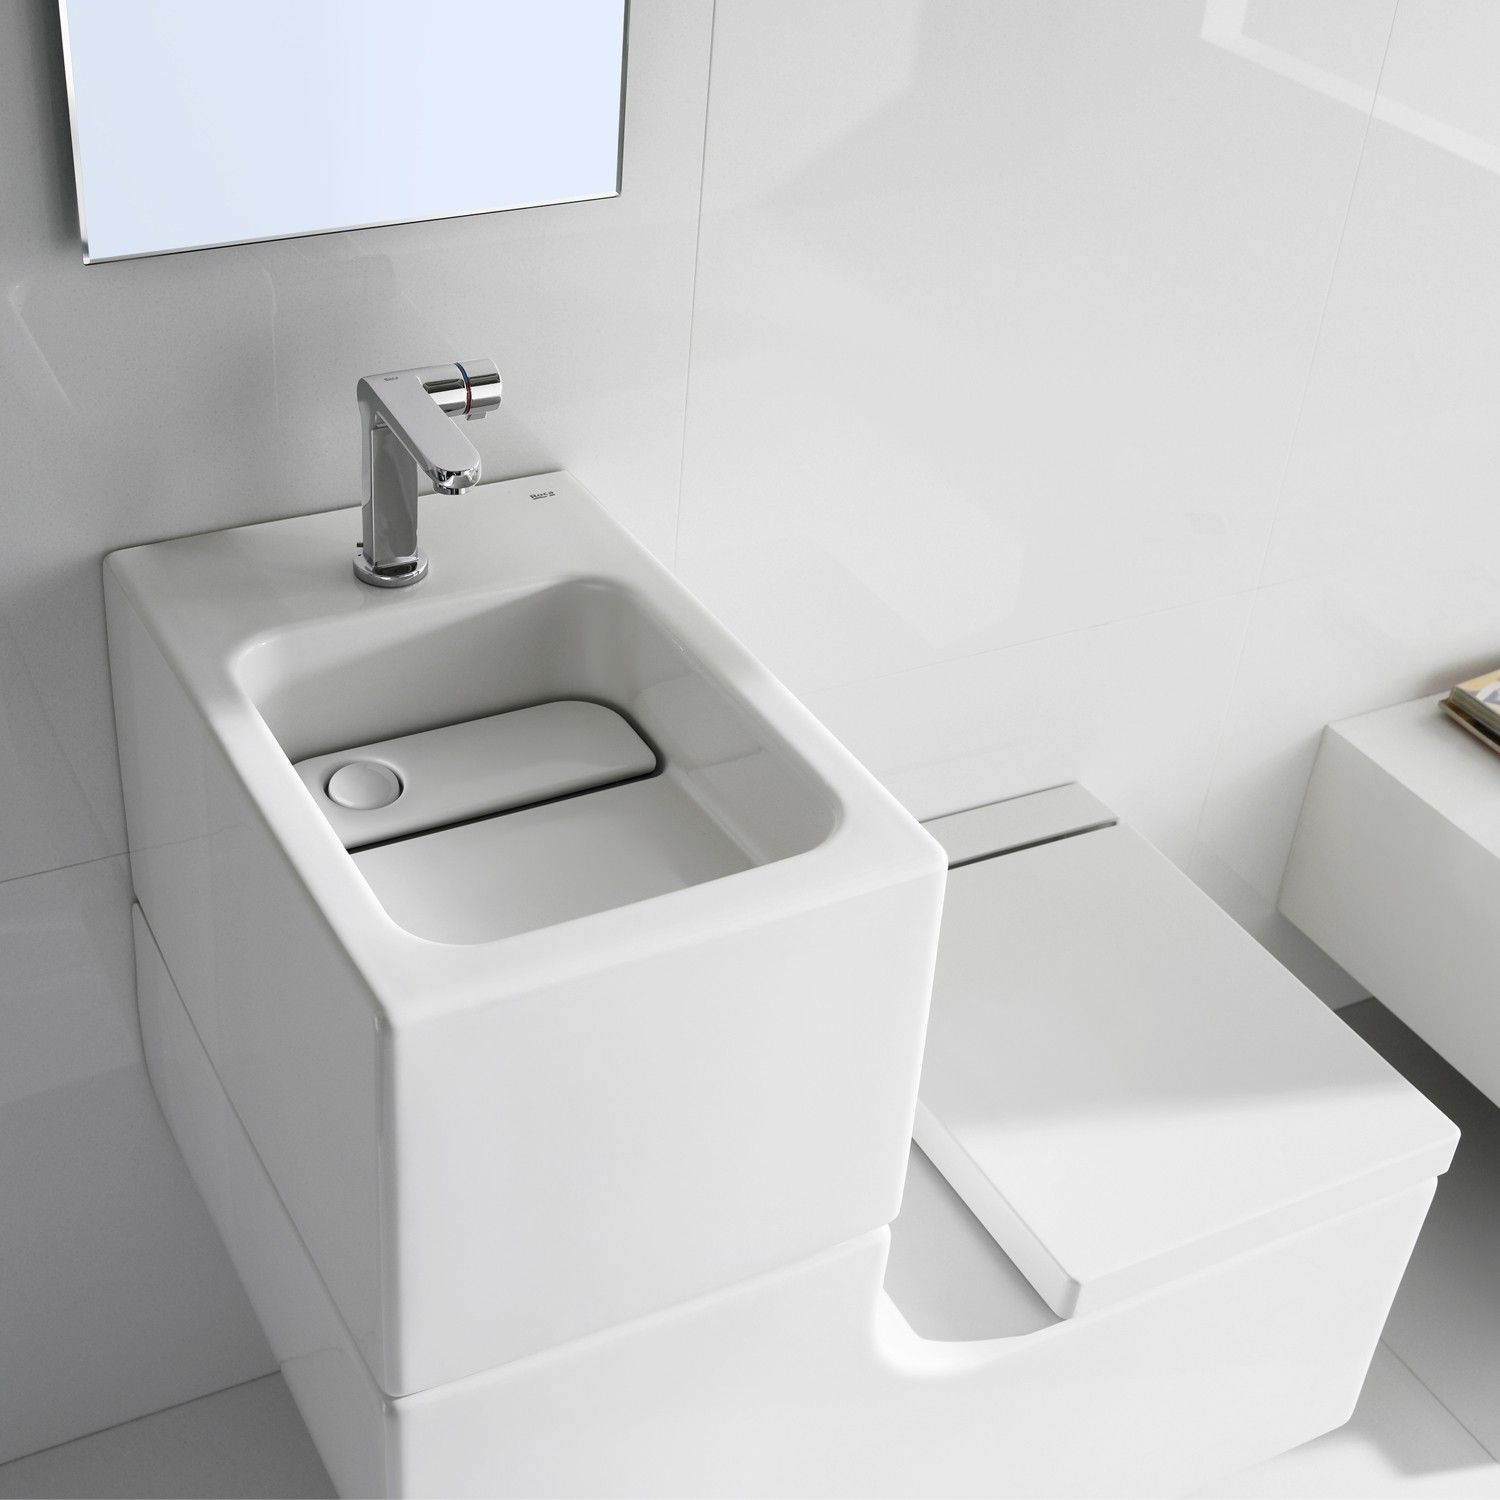 cuvette wc cologique avec lavabo int gr sur tendances wc. Black Bedroom Furniture Sets. Home Design Ideas